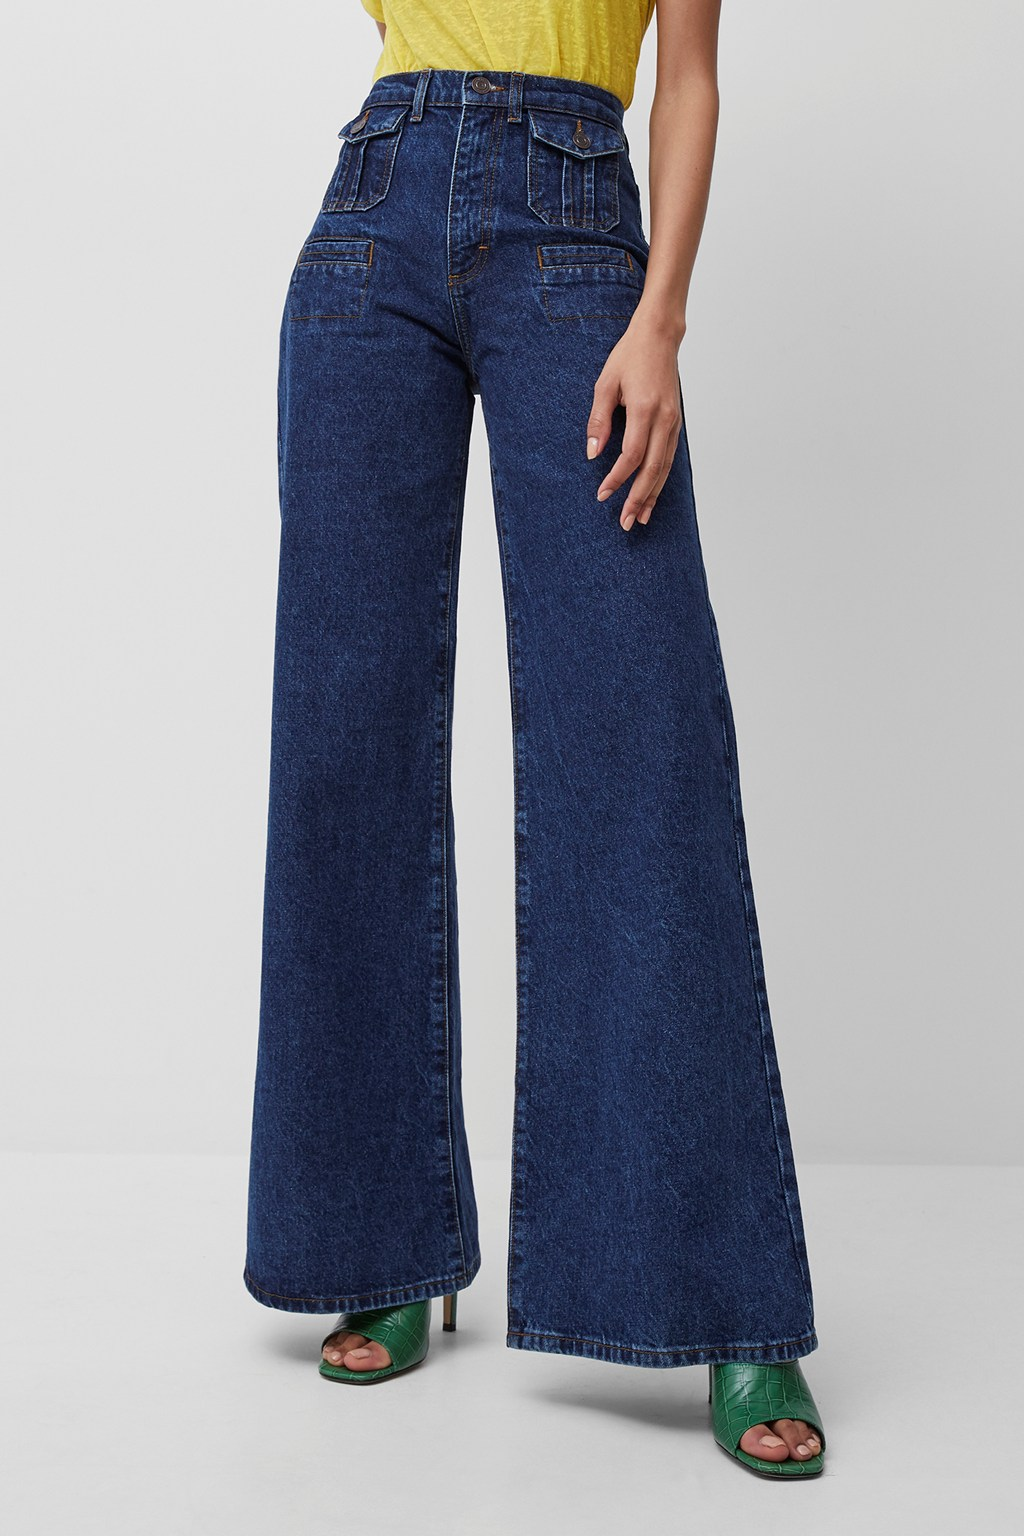 RIAH RECYCLED FLARED JEANS french connection